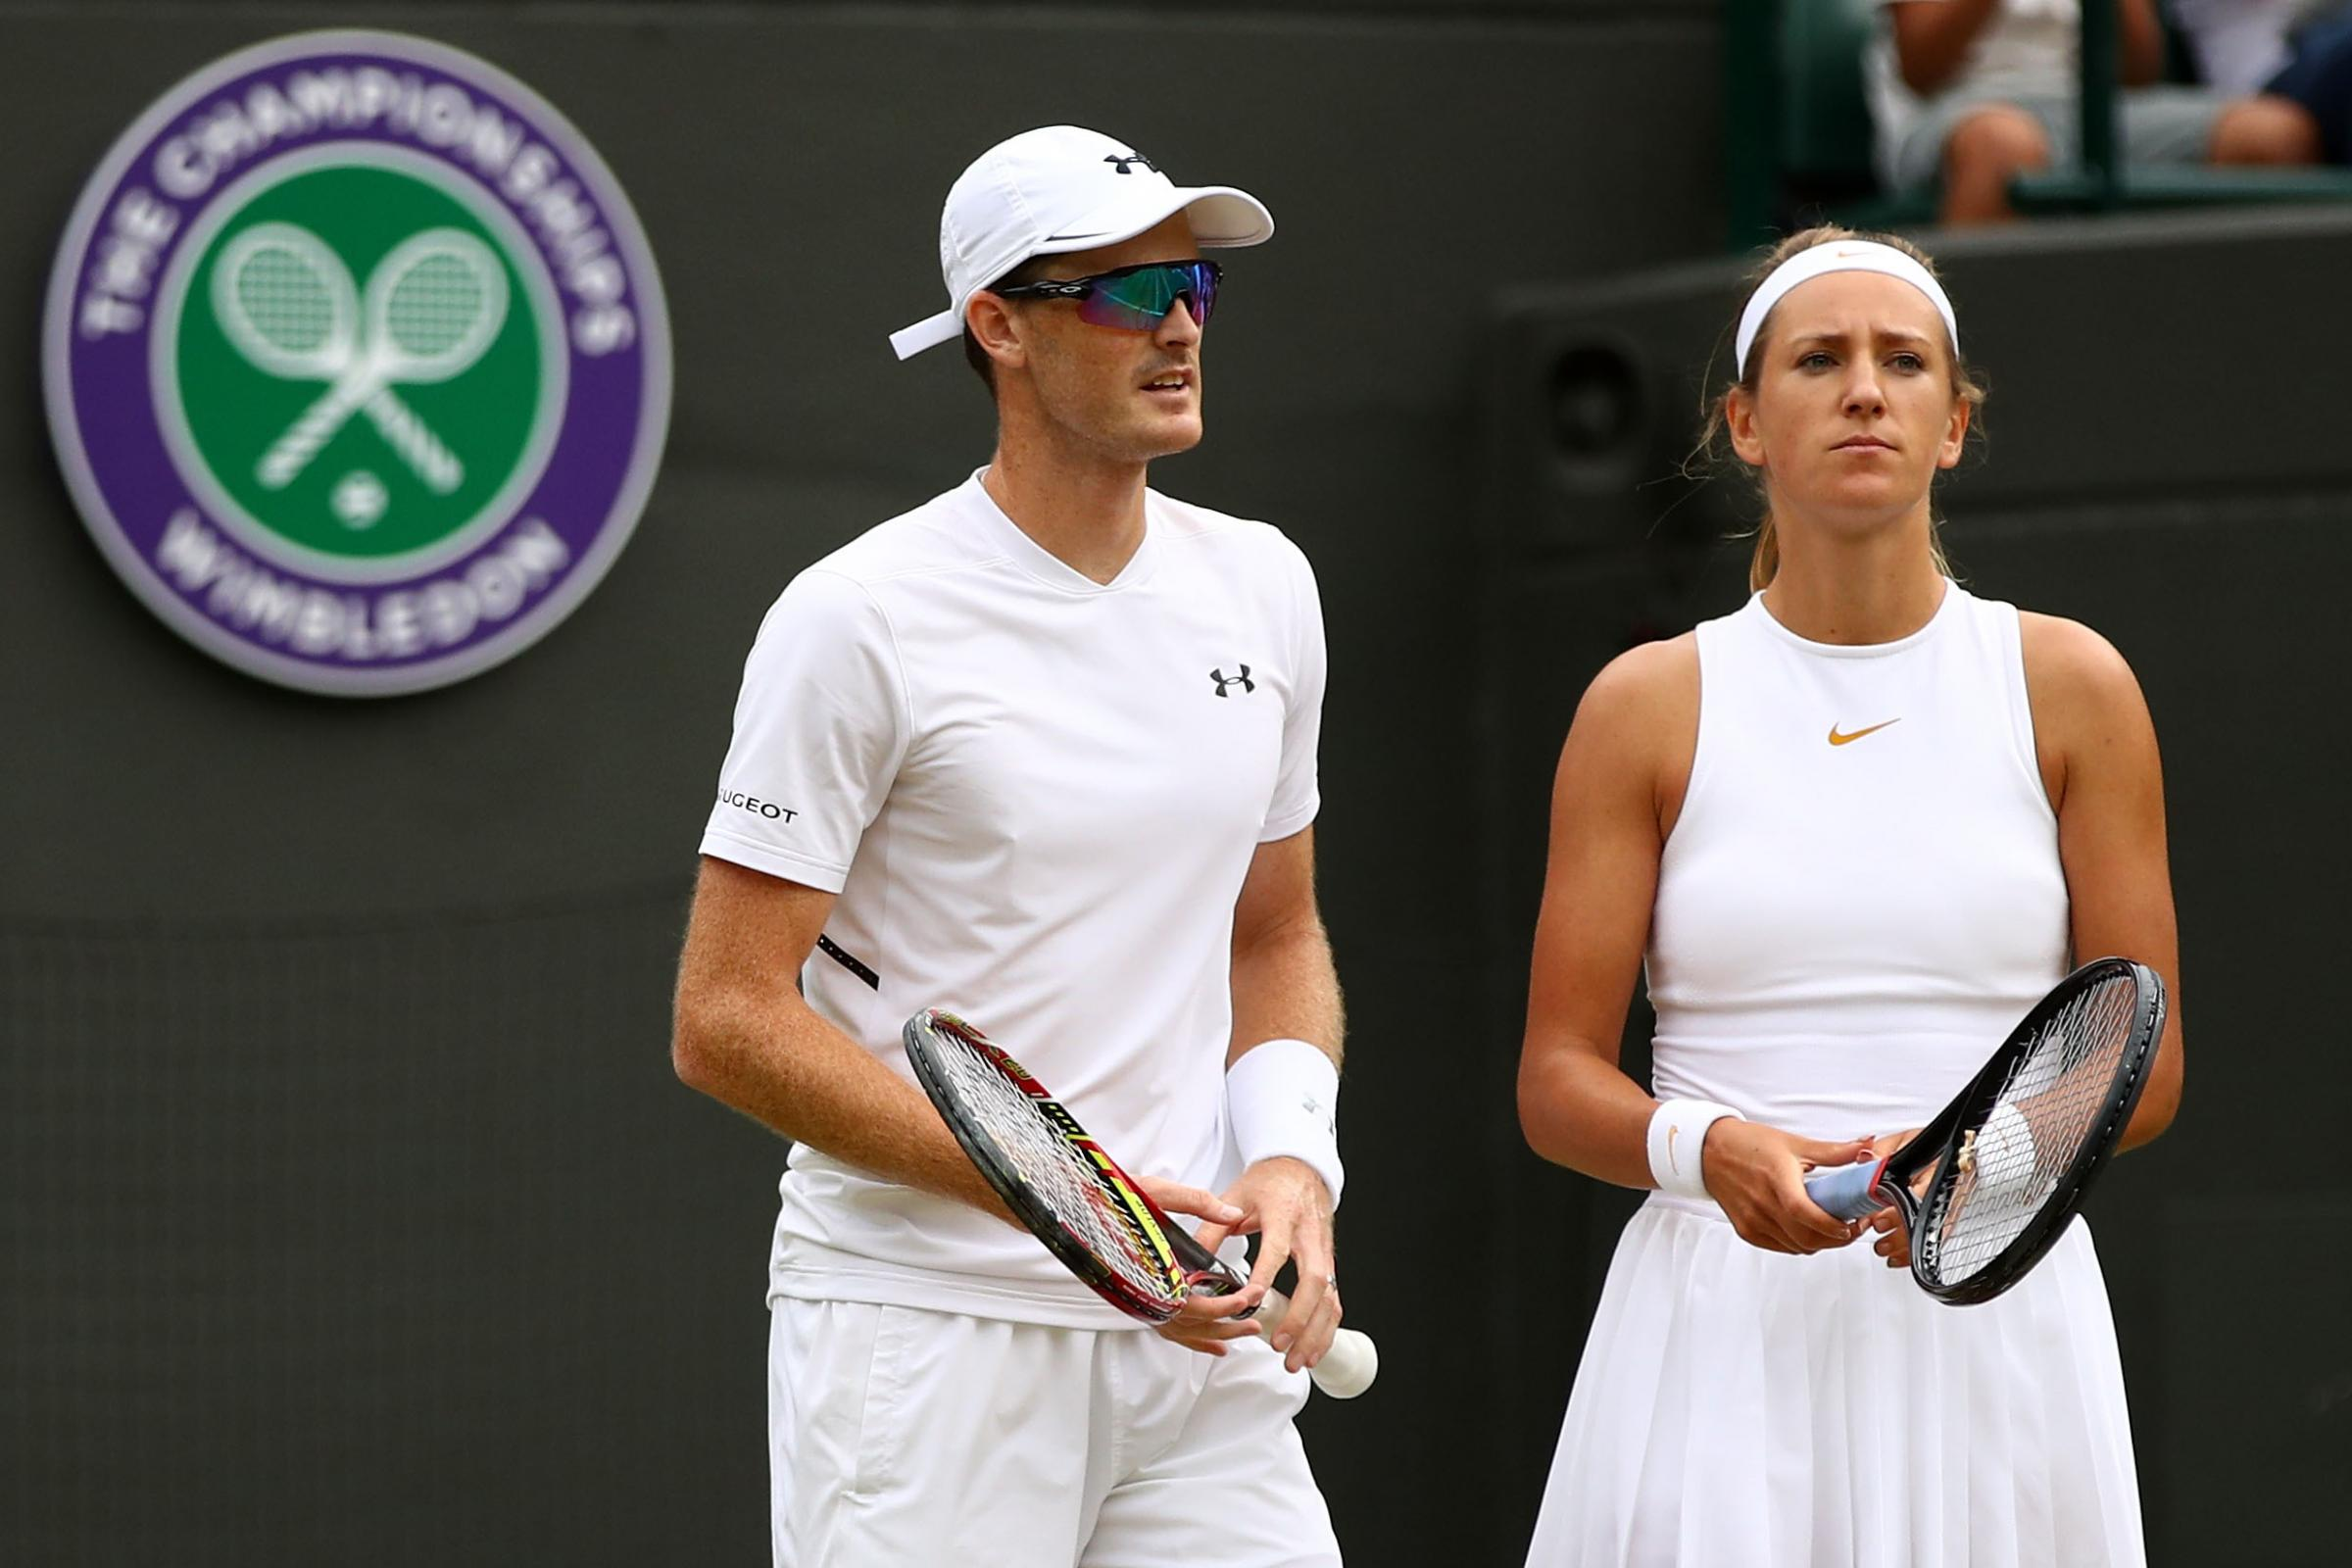 LONDON, ENGLAND - JULY 12:  Jamie Murray of Great Britain (L) and Victoria Azarenka of Belarus look on during their Mixed Doubles quarter-final match against Jean-Julien Rojer and Demi Schuurs of The Netherlands on day ten of the Wimbledon Lawn Tennis Cha